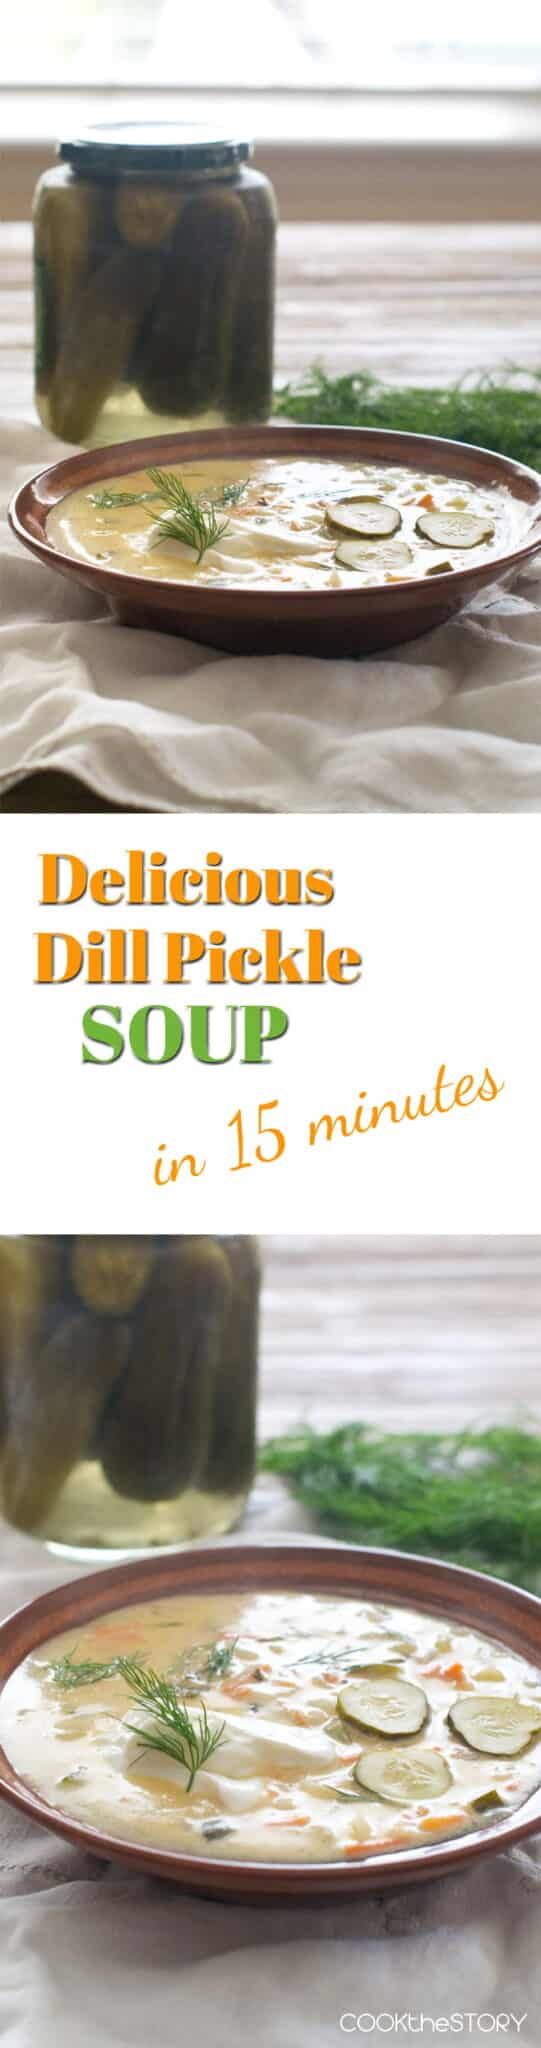 Delicious Dill Pickle Soup, homemade soup in 15 Minutes. It's like a creamy potato soup with extra salt and tang from the pickles and sour cream. So good!